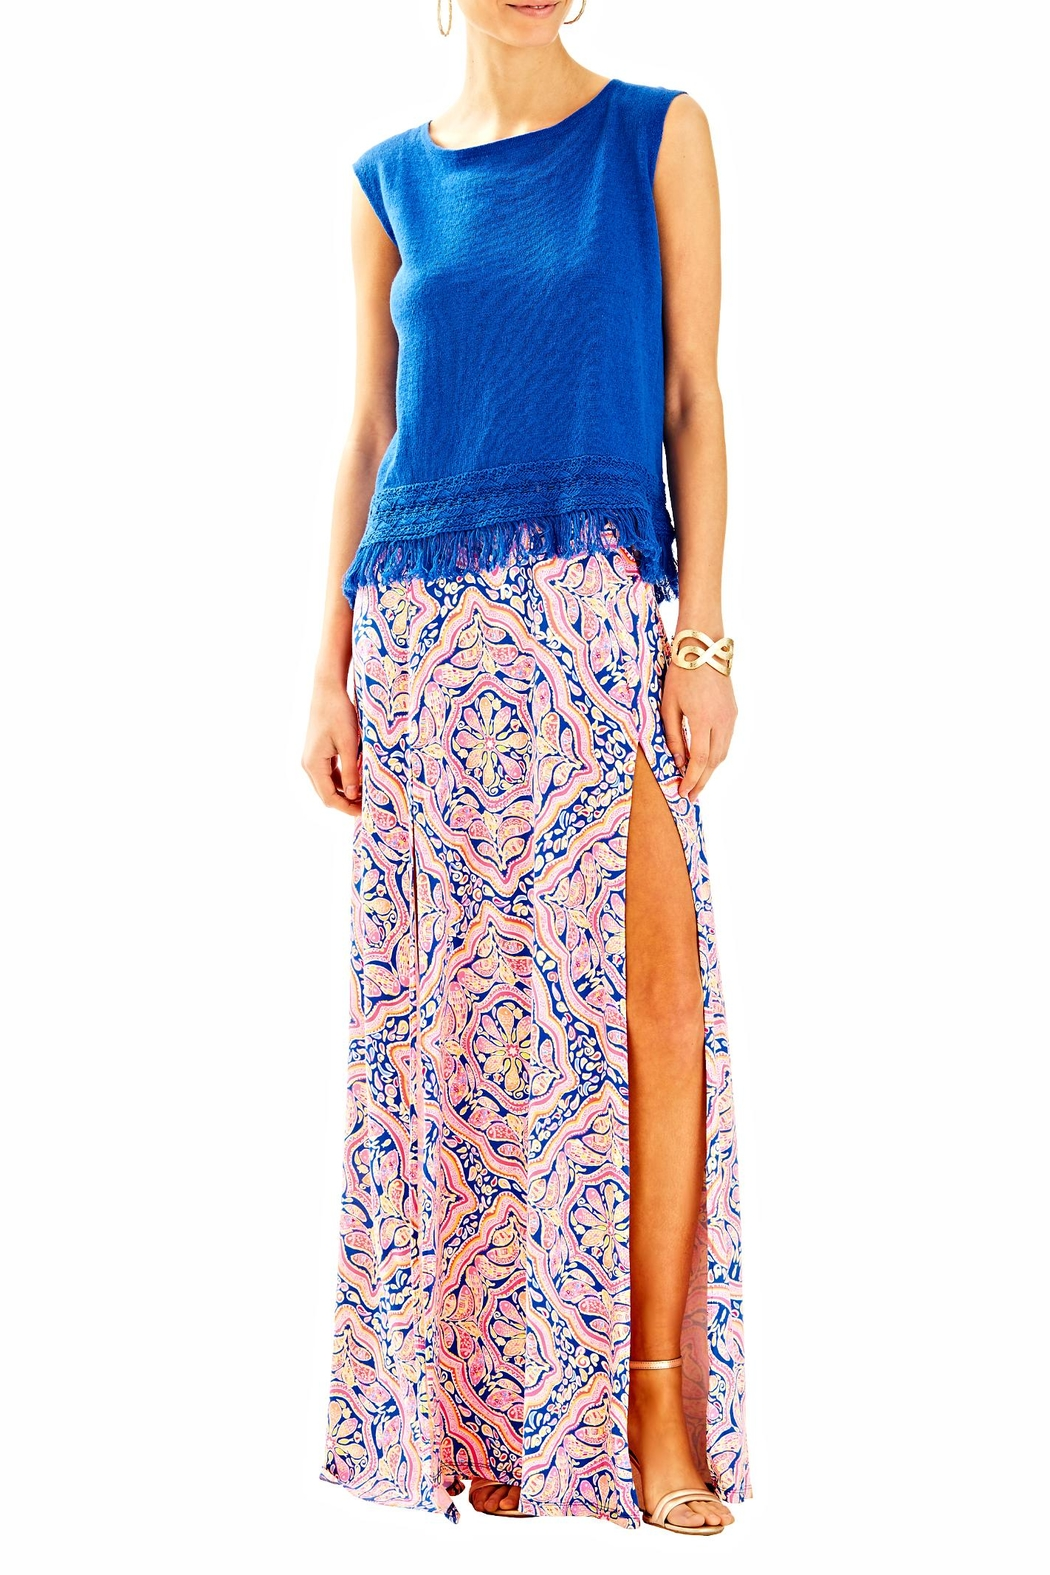 Lilly Pulitzer Edenwood Sweater Tank Top - Side Cropped Image